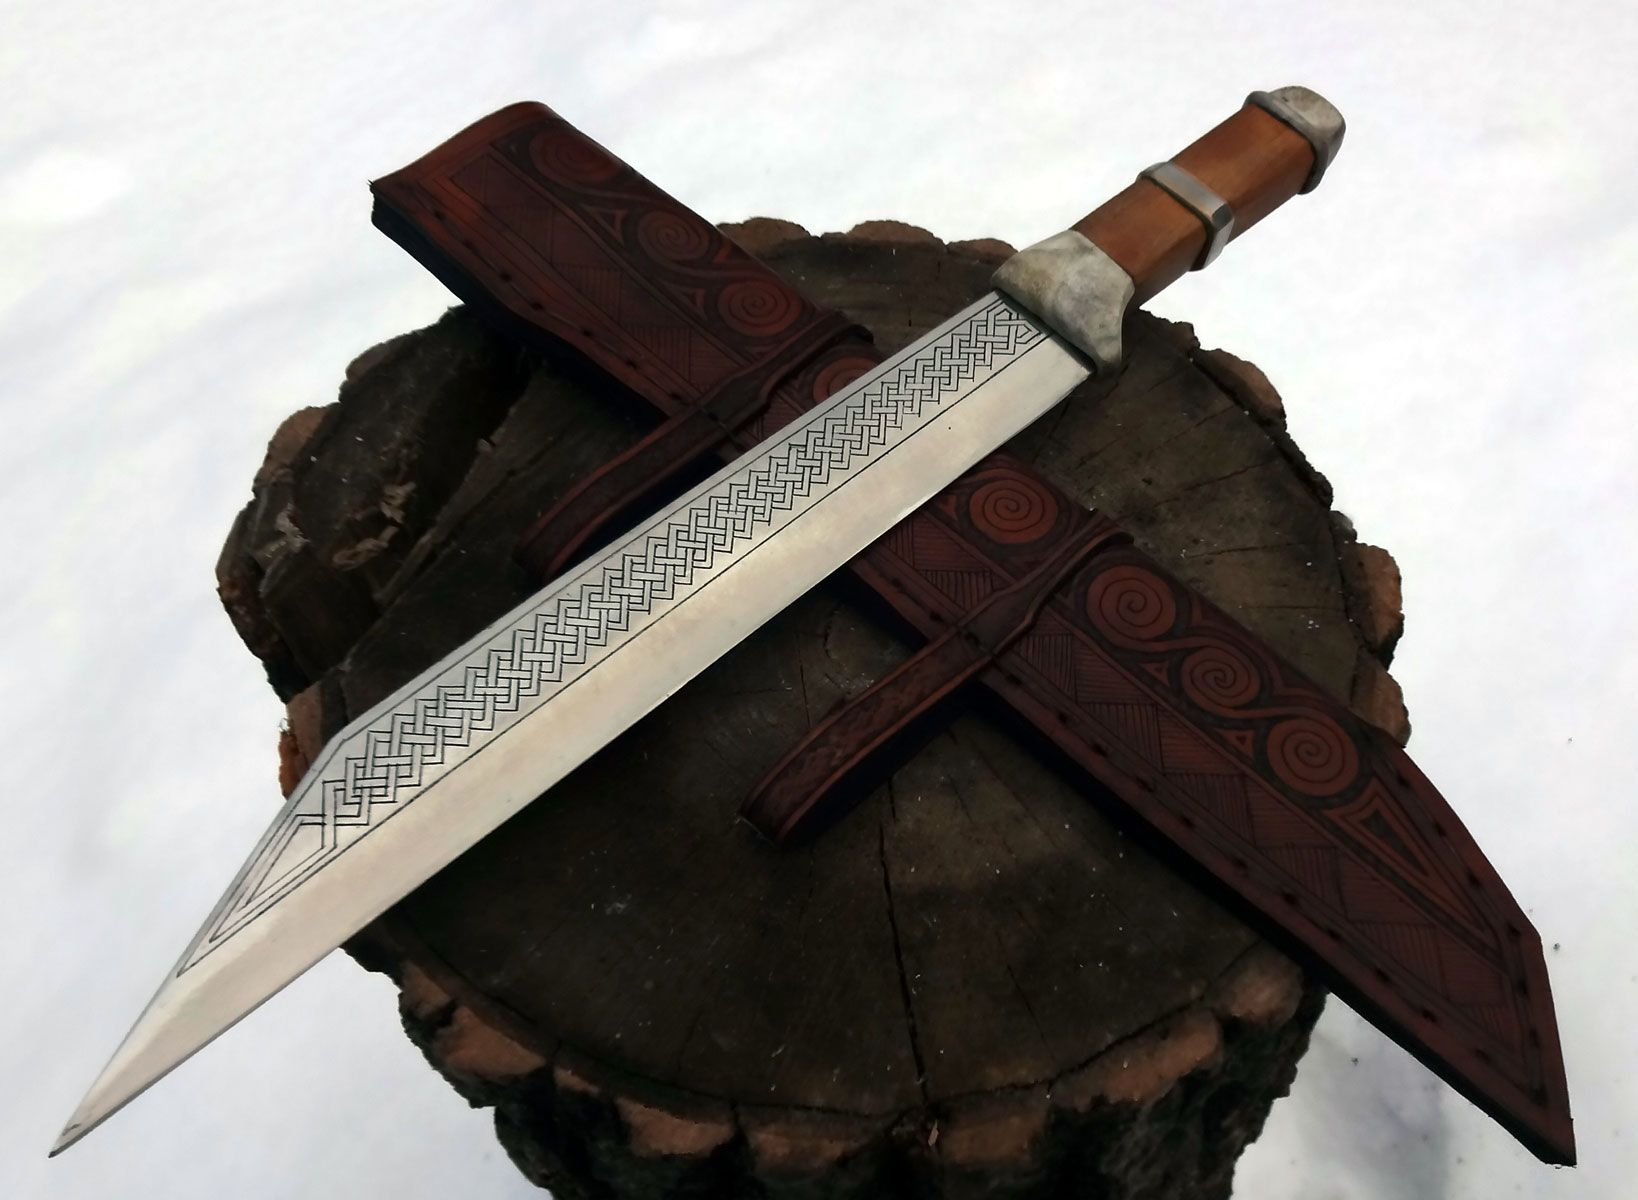 Anglo Saxon Style Broken Back Seax Hand Forged From 1080 The Handle Is Made From Oak With Antler Guard Knives And Swords Anglo Saxon Runes Hand Forged Knife